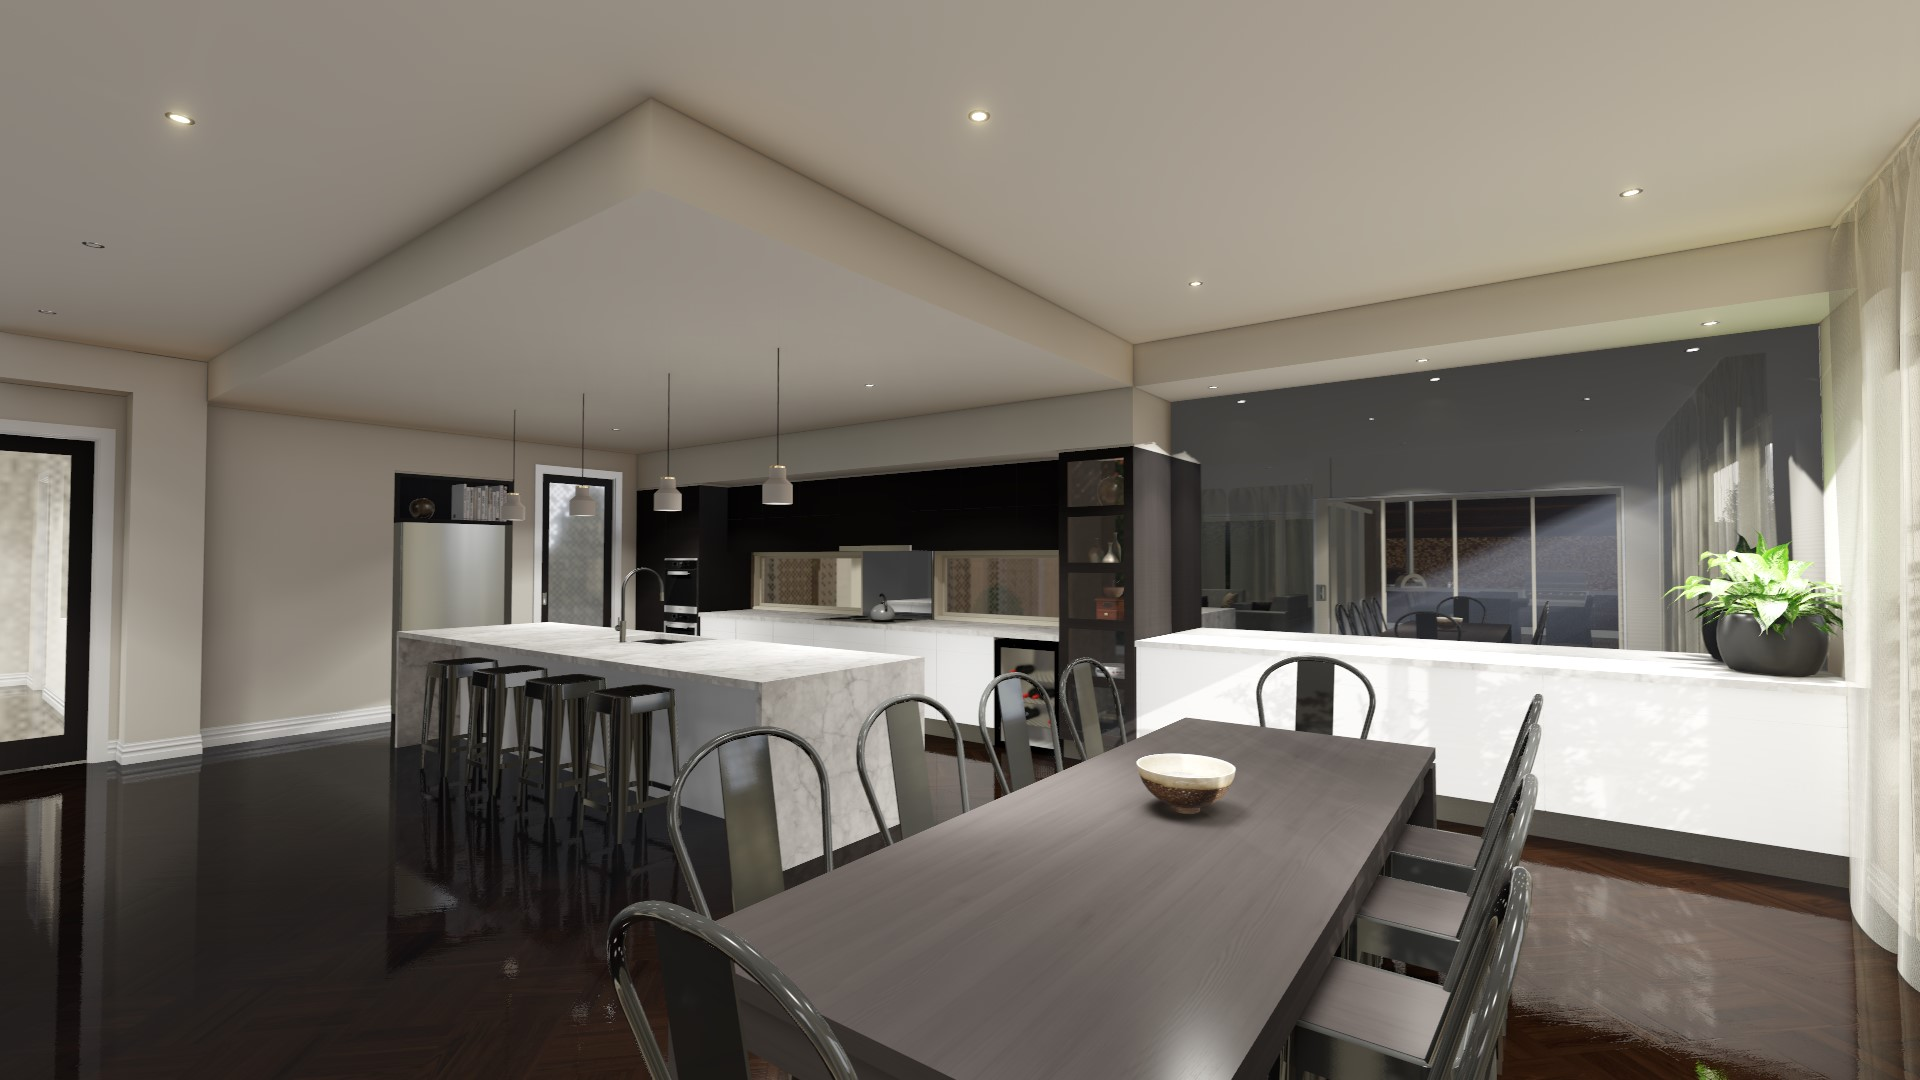 Corhampton balwyn north 541 virtual home design for Virtual home design